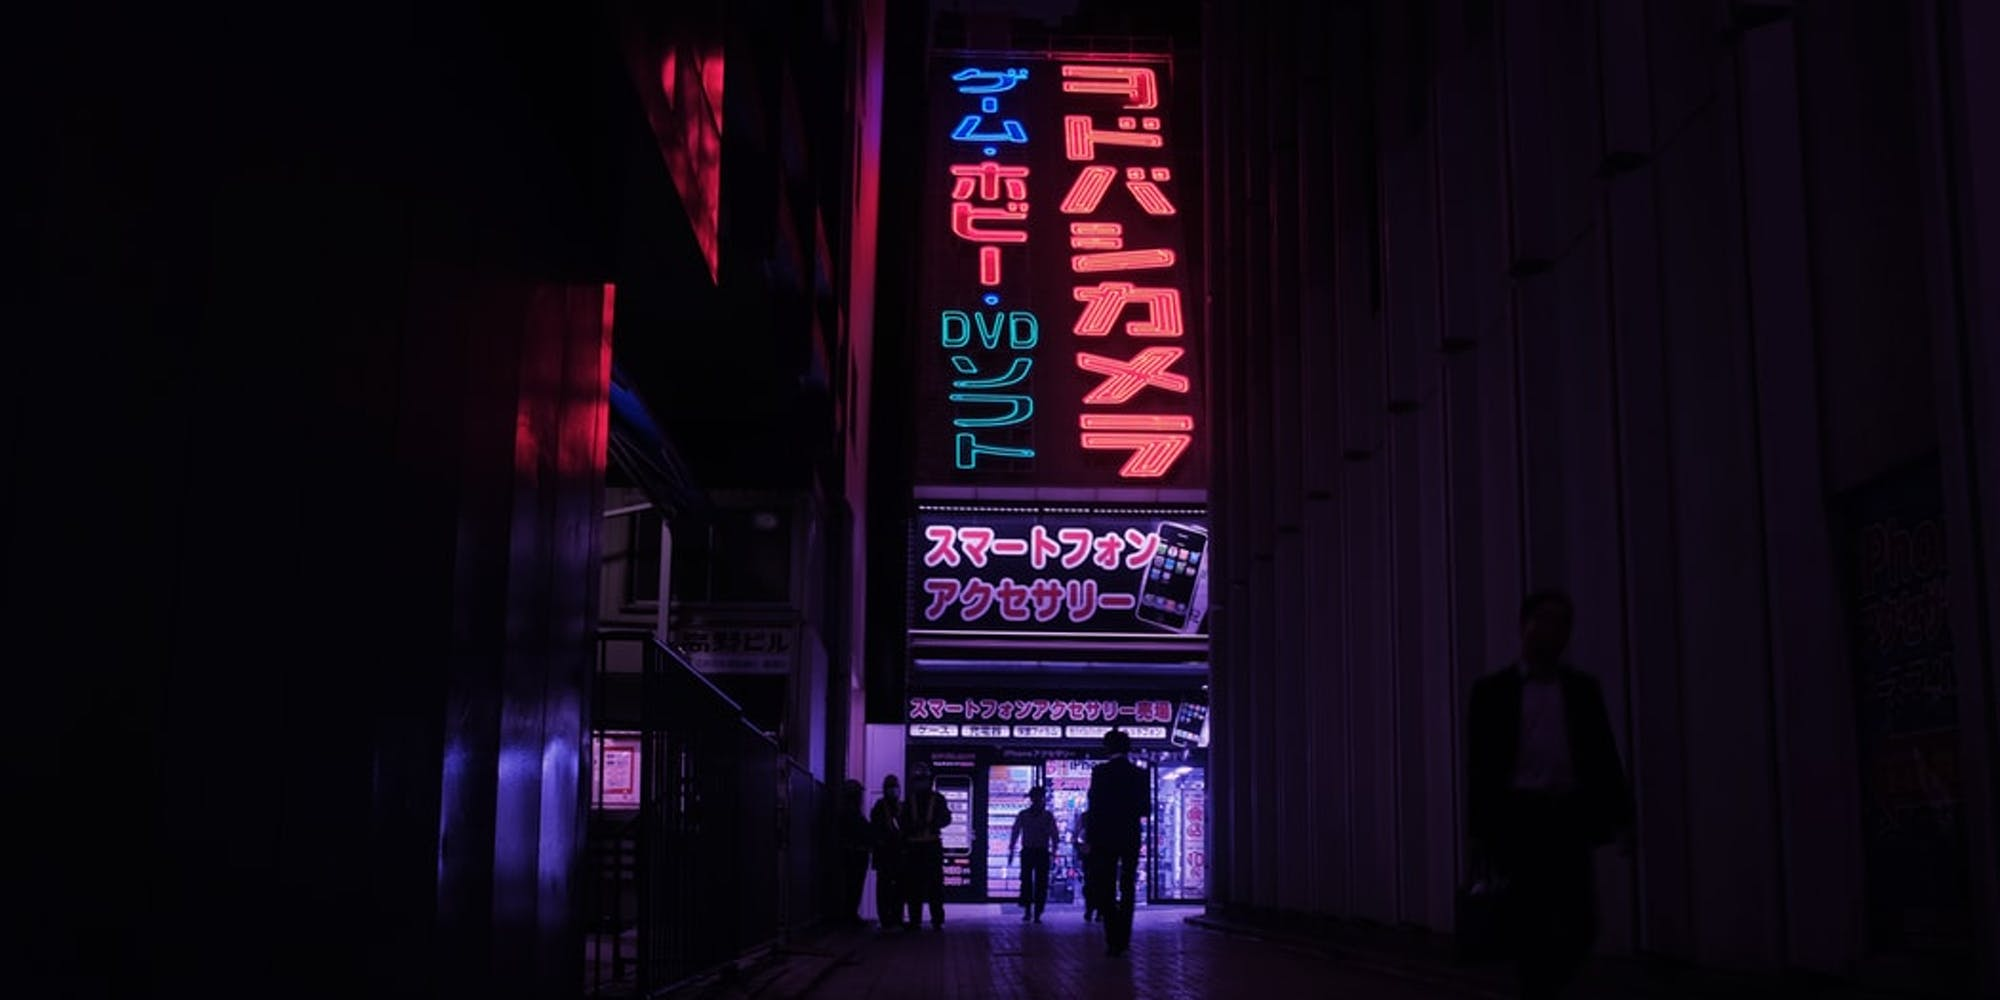 A large neon sign in Japan during the night